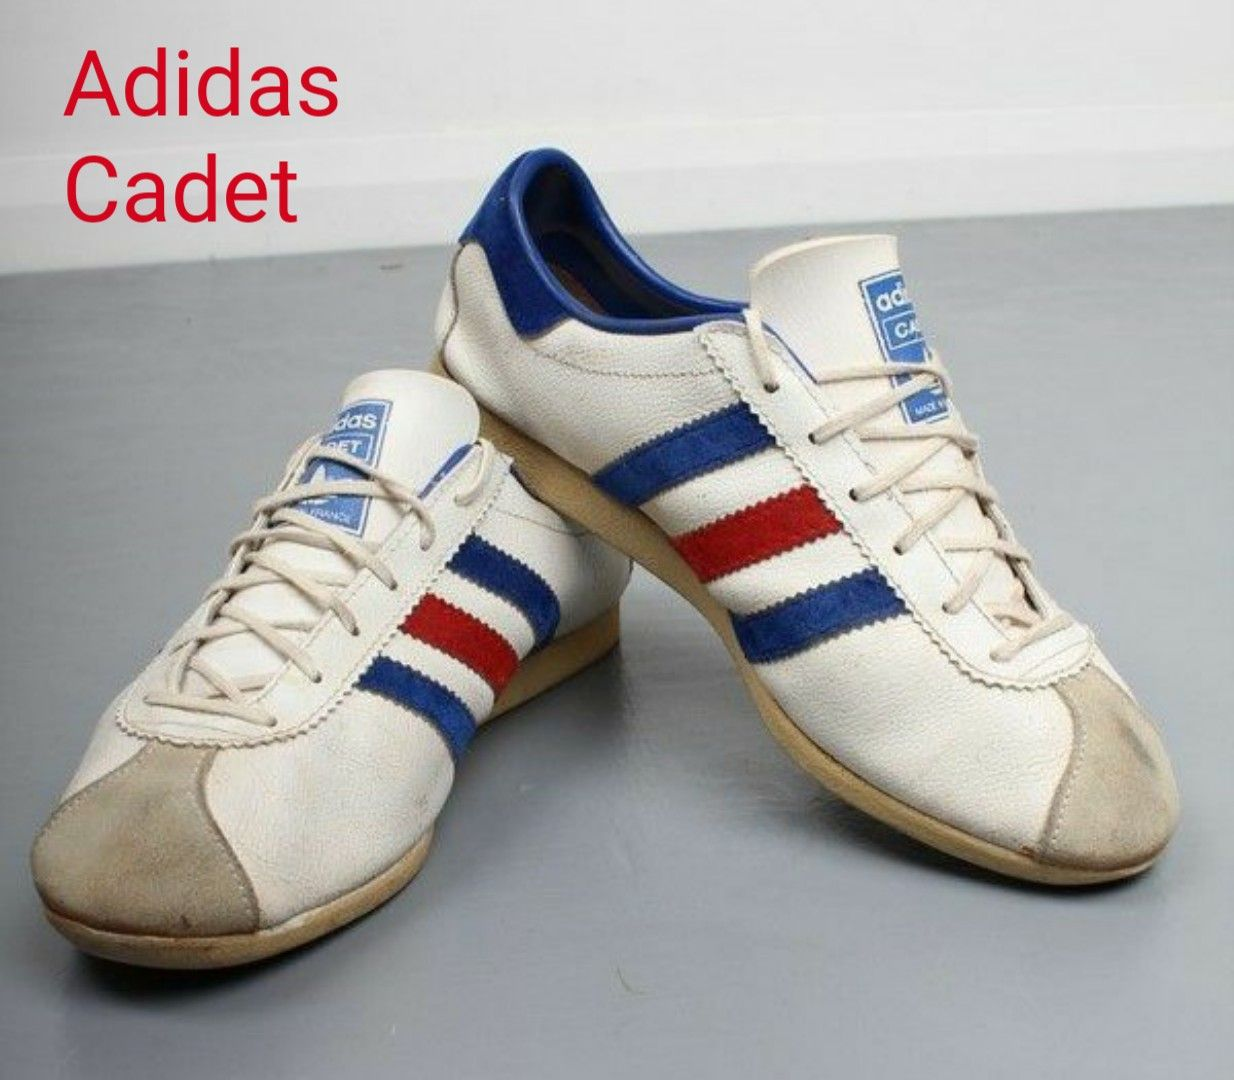 solicitud pedir disculpas Subvención  Vintage Adidas Cadet in excellent condition.. | Adidas classic shoes,  Vintage adidas, Adidas shoes originals